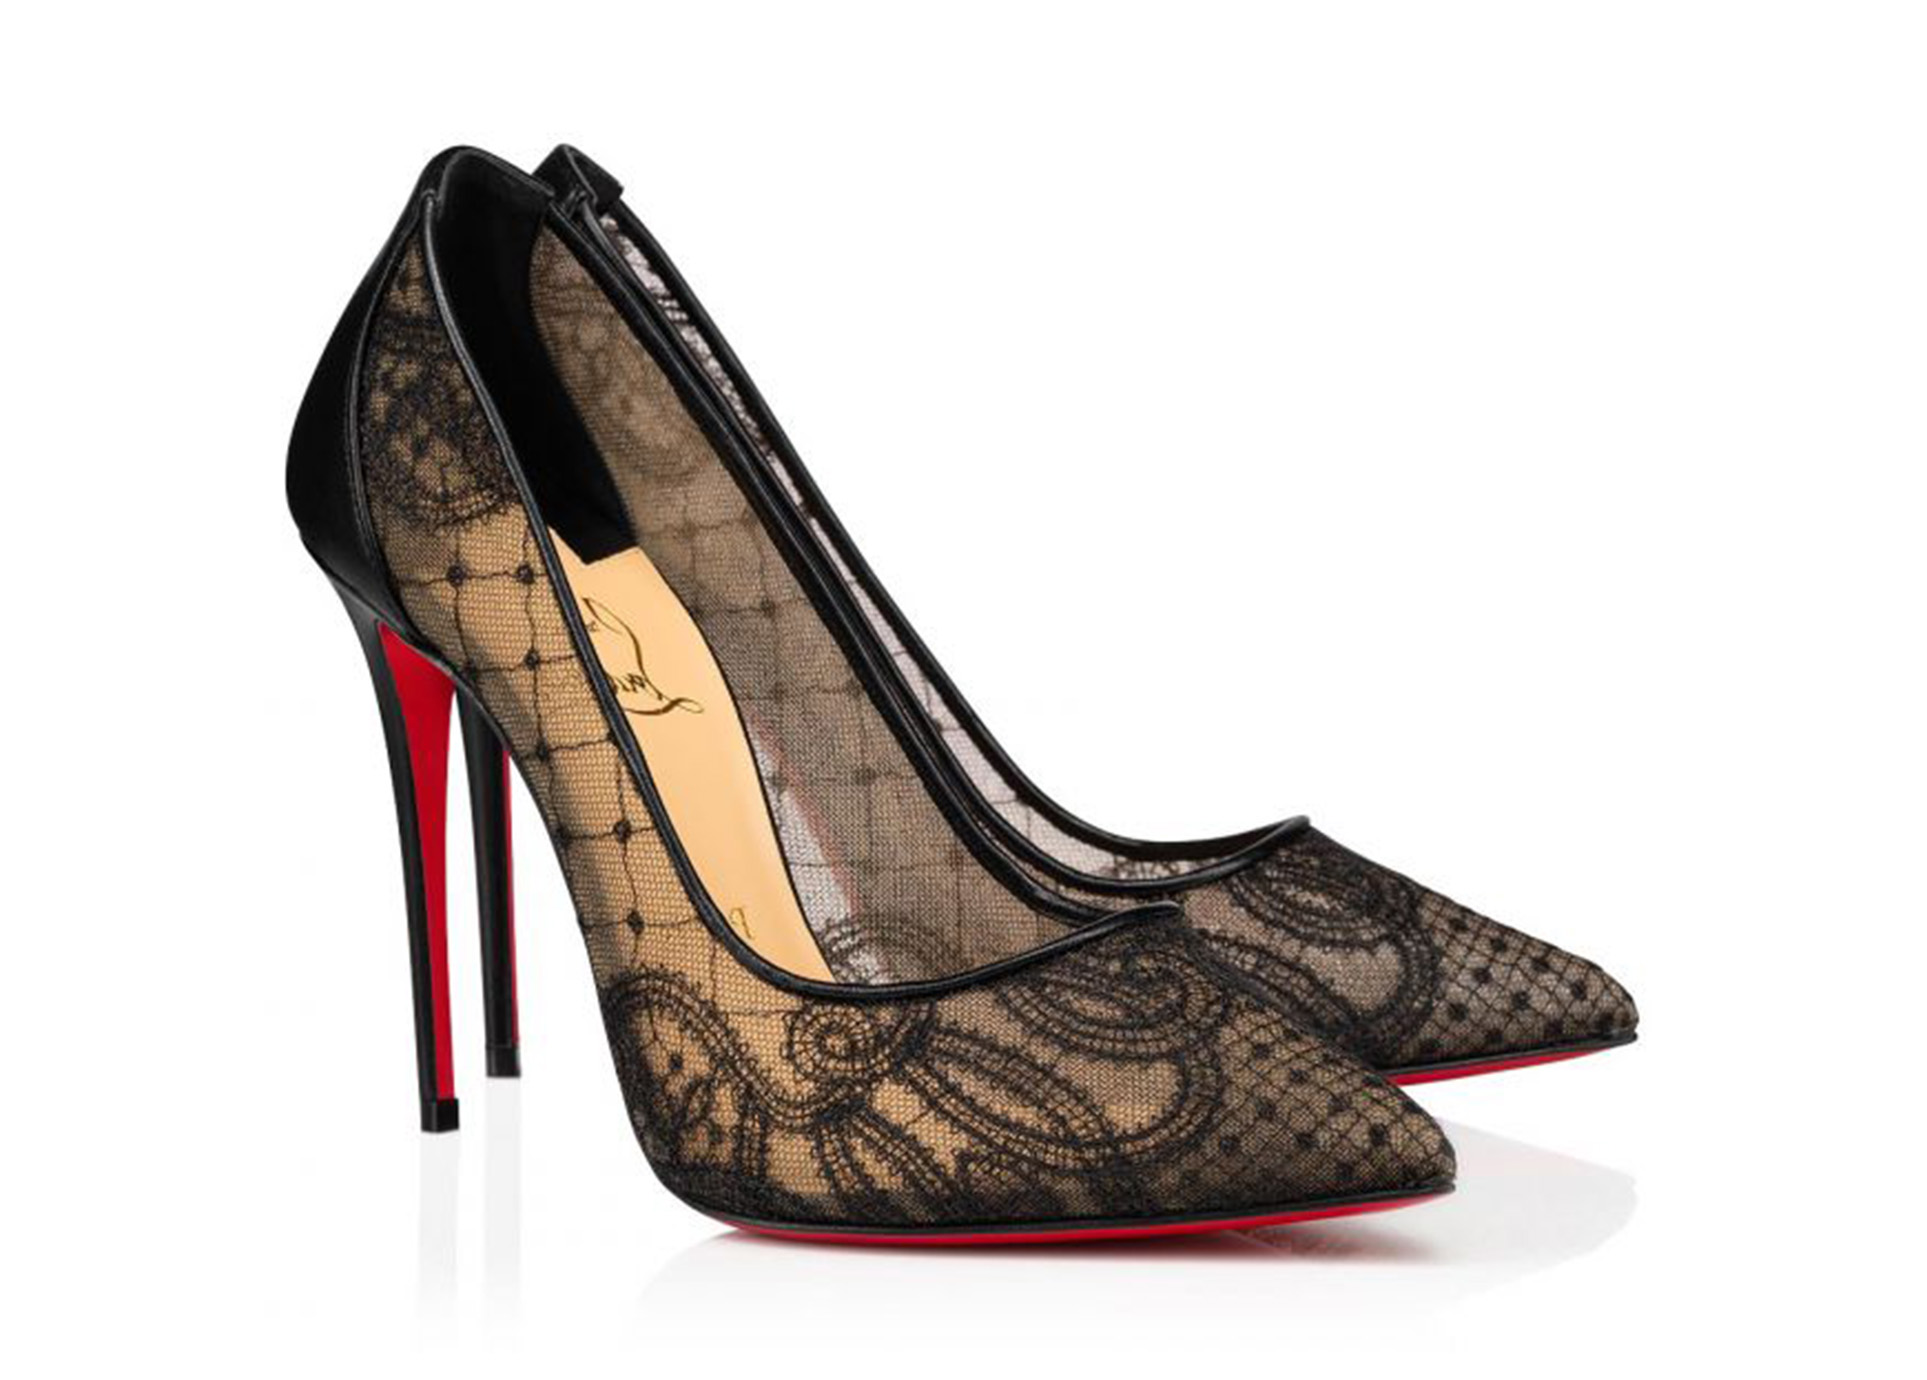 Zapatos Follies Lace de Christian Louboutin